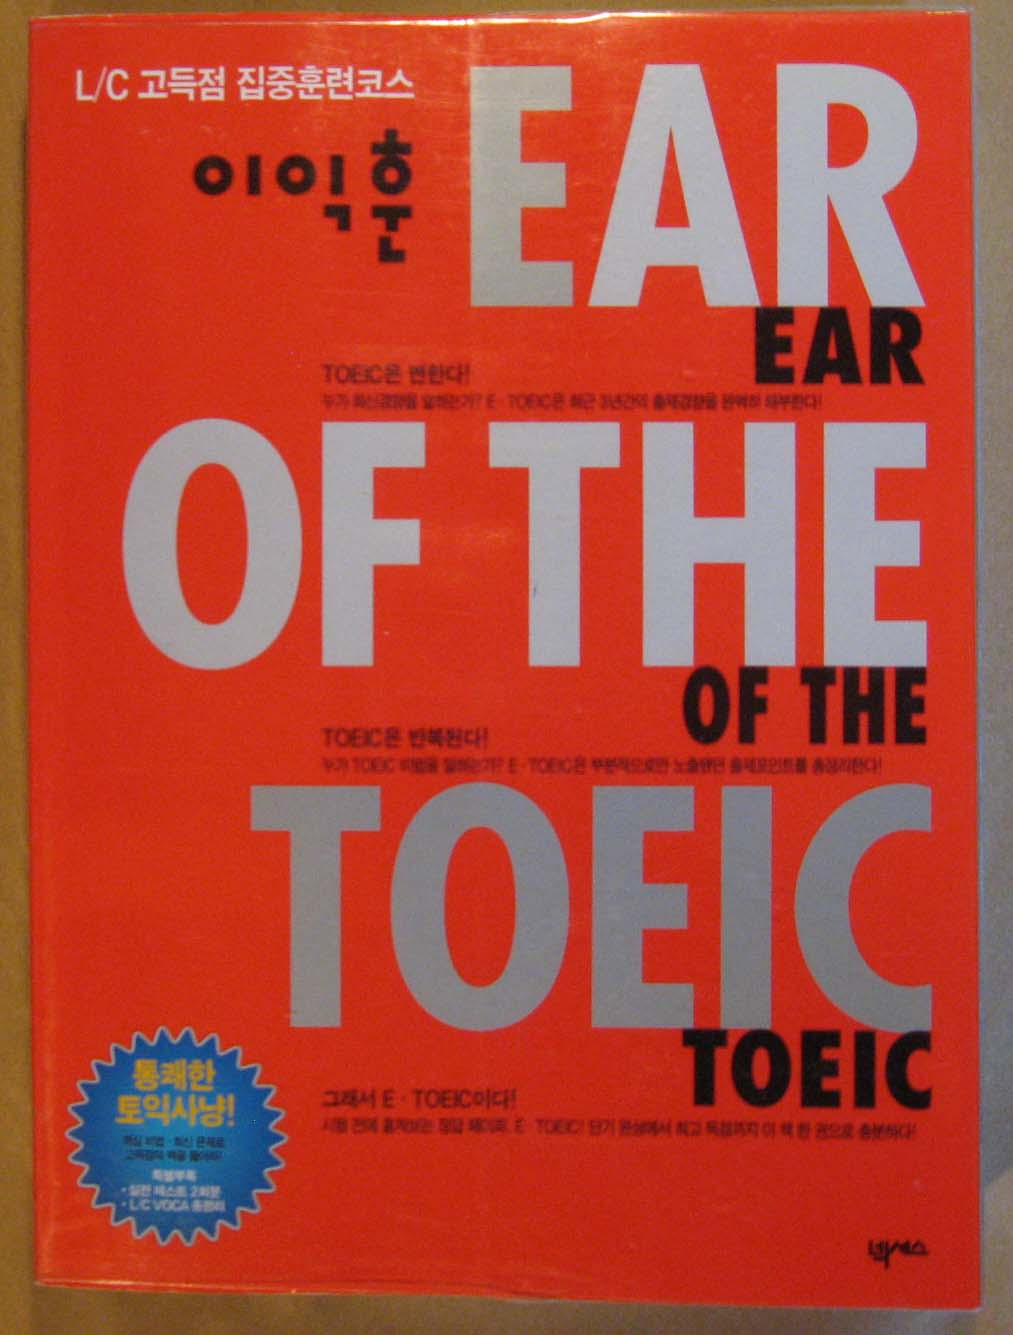 Ear of the TOEIC:  .English/Korean... (Part I, II, III, IV).Factual Description (Part I).Possible Questions (Part II).Similar Answers (Part II). Extra Q&A (Part III, IV).Possible Answers (Part I, II, III).Acutal Test.Toeic L/C Dictionary., Toeic